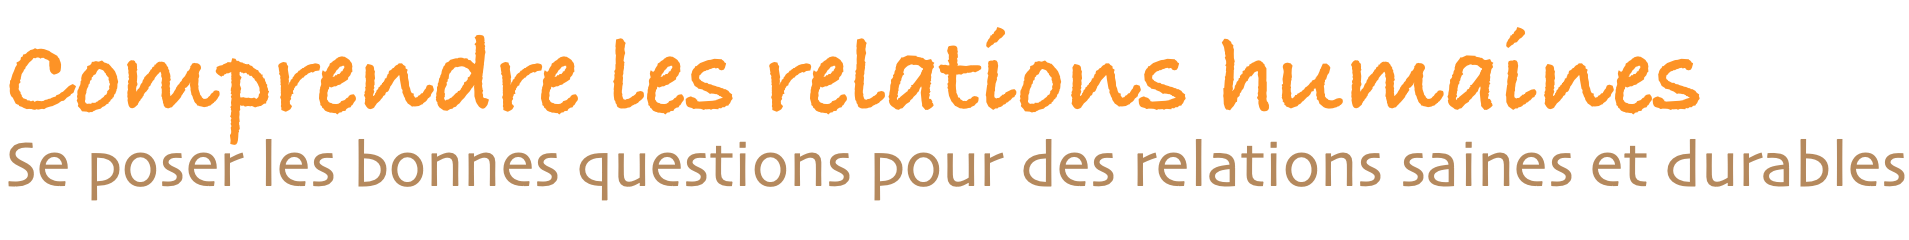 Comprendre les relations humaines